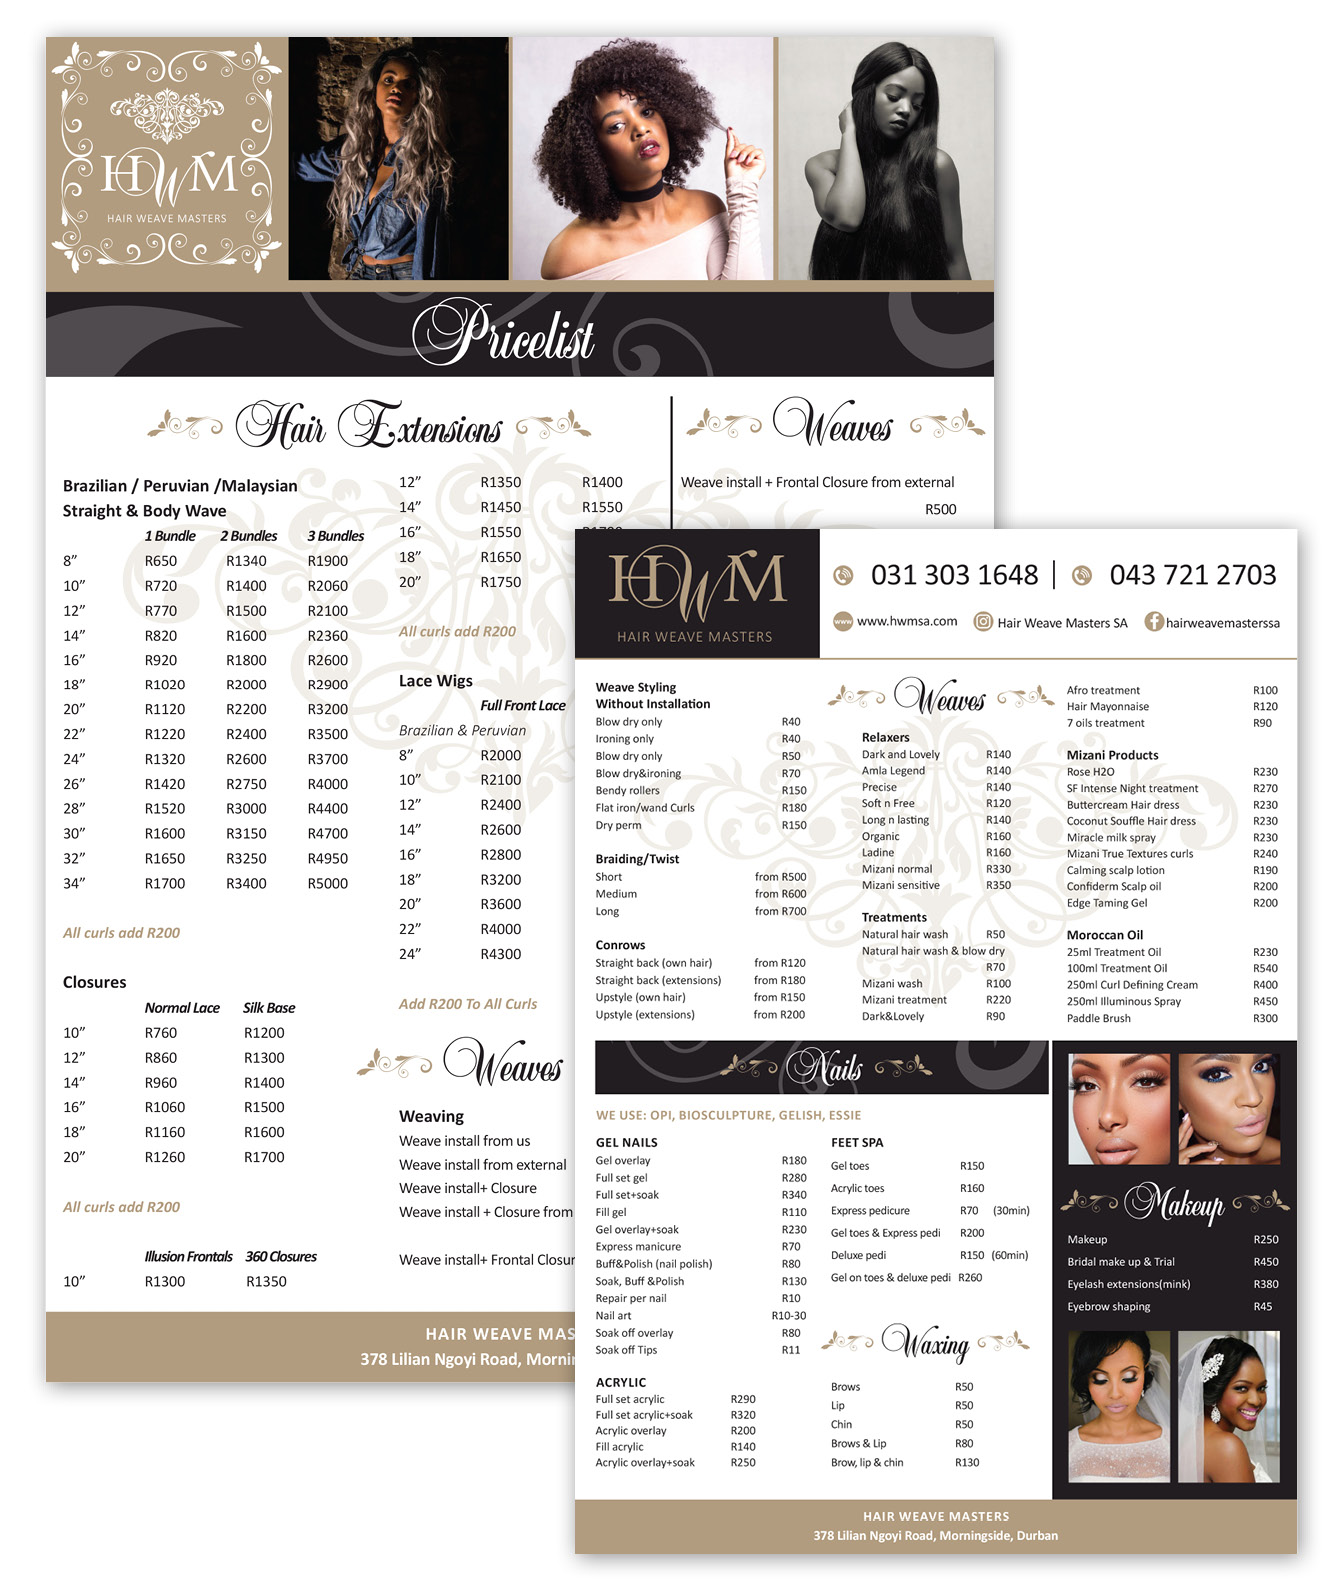 Hair Weave Masters Pricelist